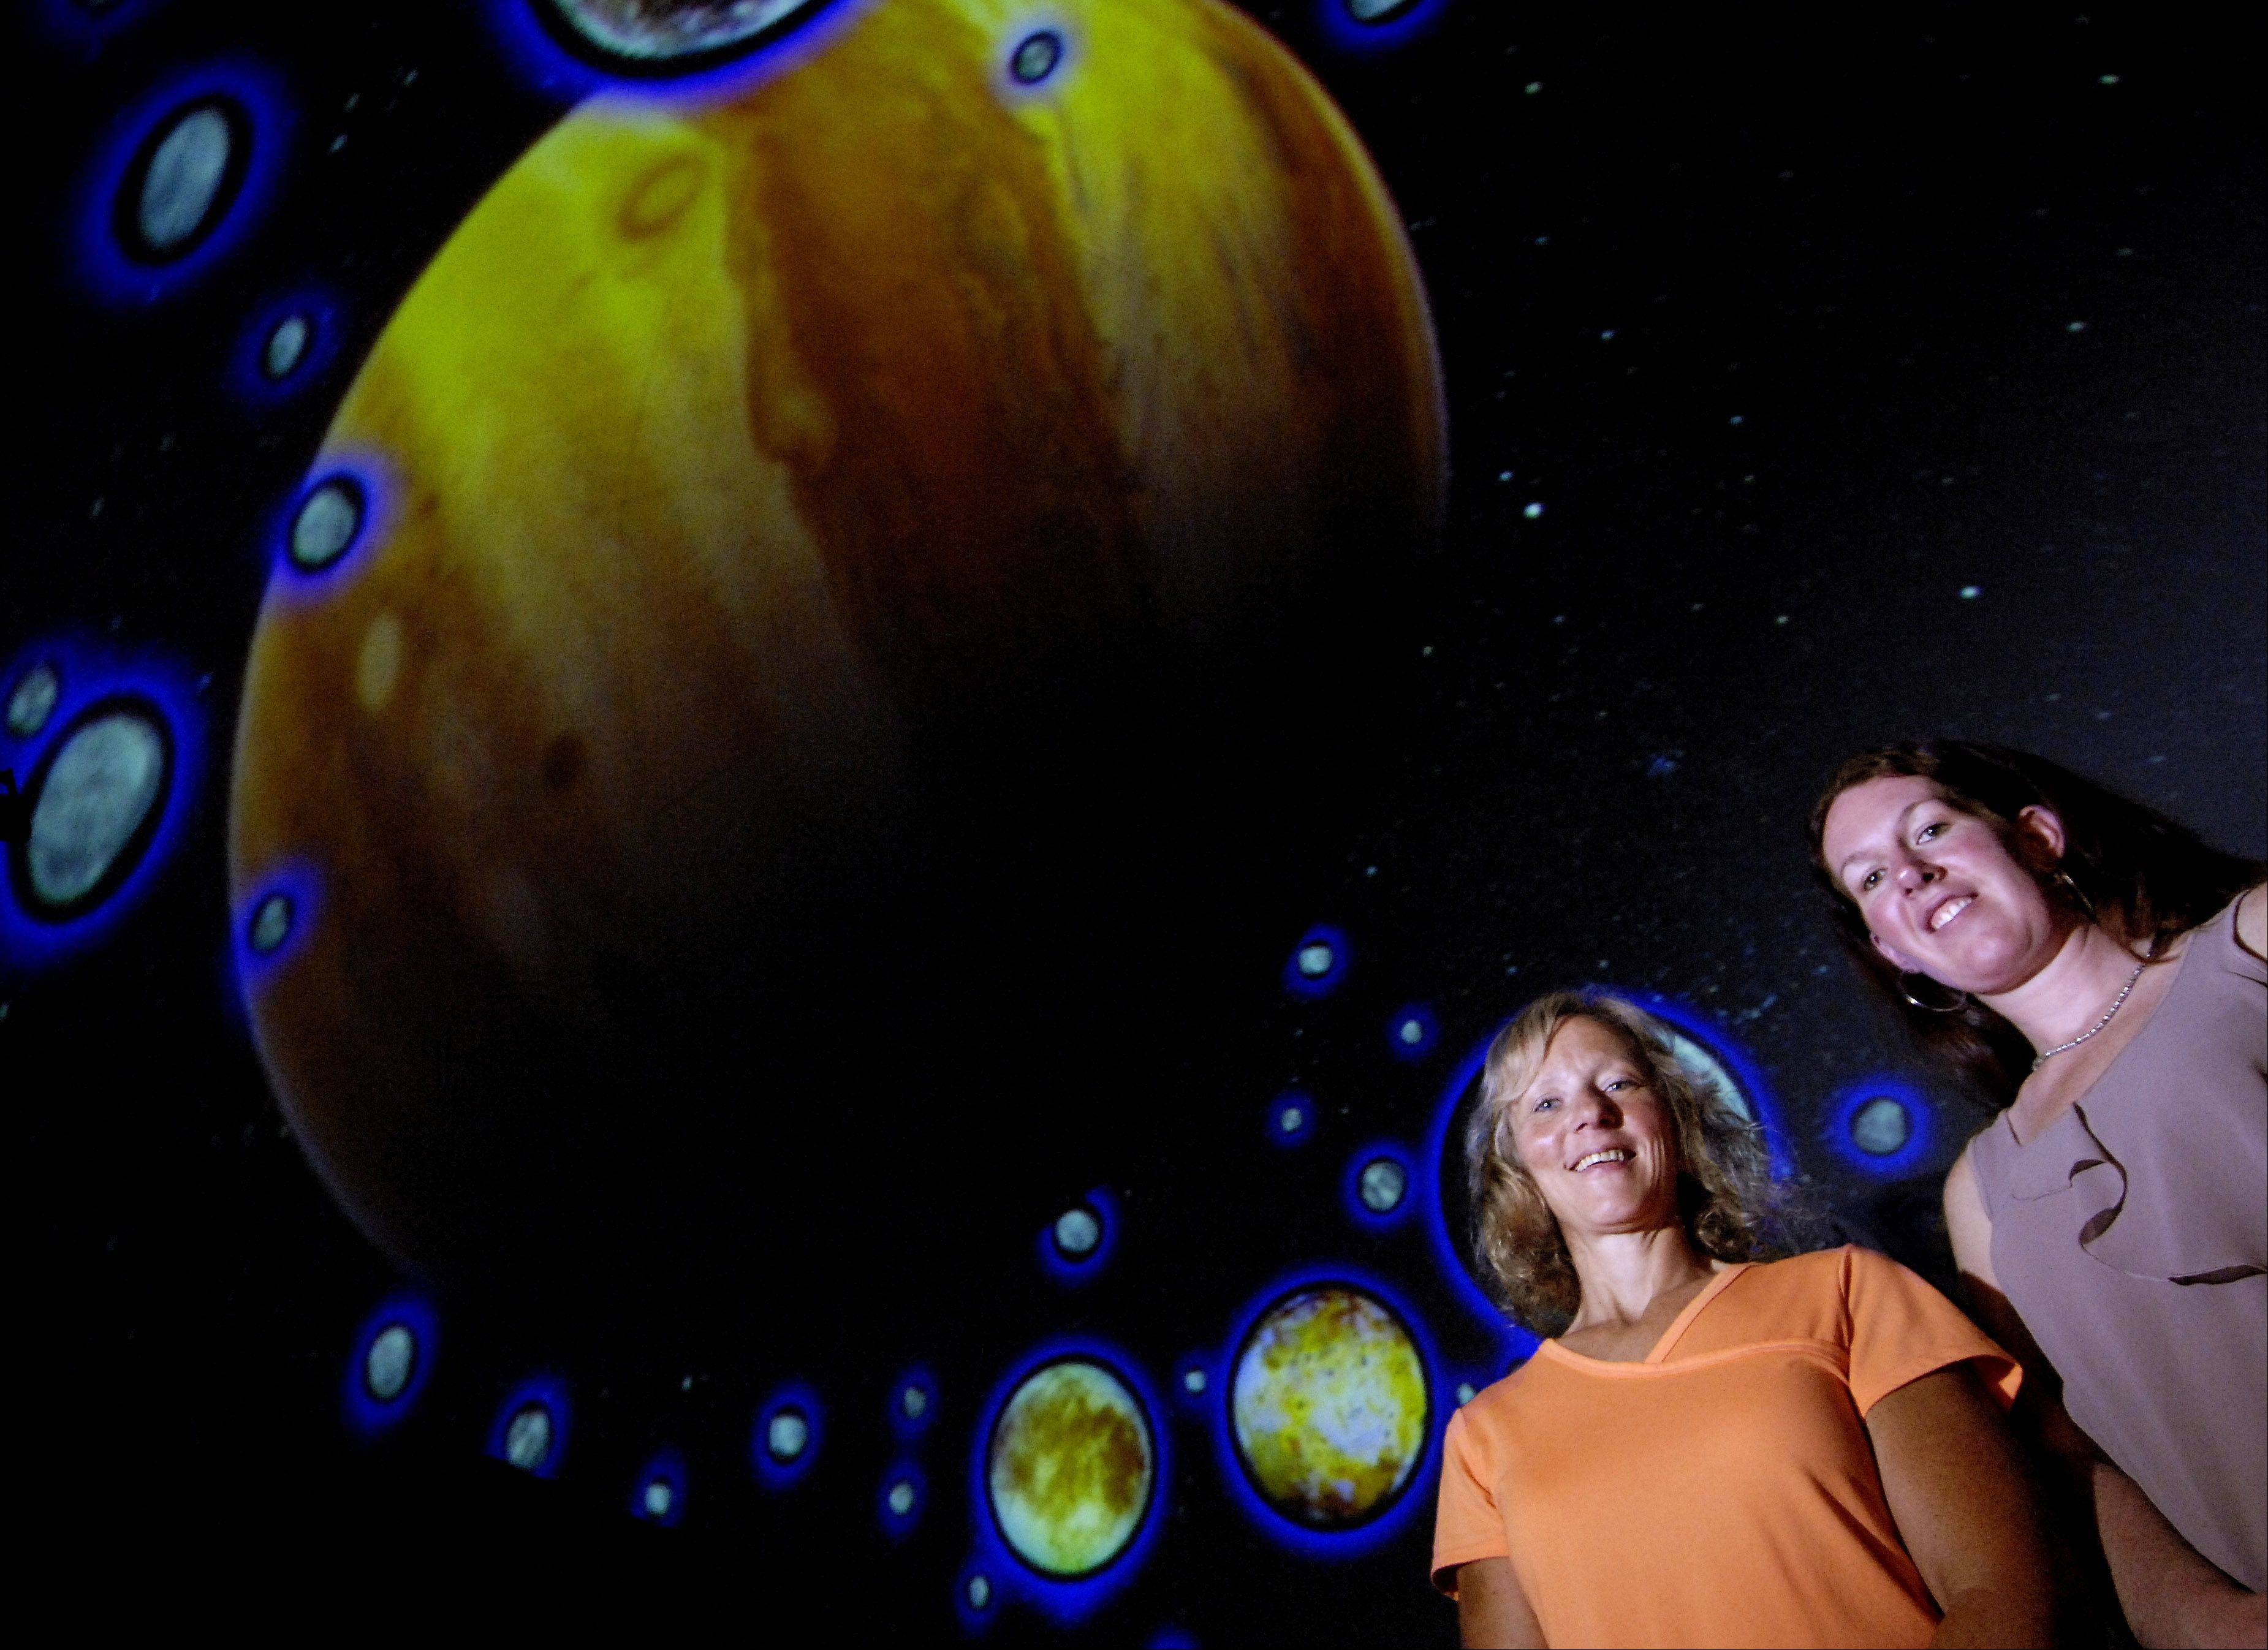 Peggy Hernandez, left, and Jennifer McDonnell stand in the Elgin Area School District U-46 Planetarium in front of a scene using its new full-dome projector. Hernandez is a teacher and director of the planetarium. McDonnell is coordinator of Math, Science, Planetarium & Instructional Technology for U-46.